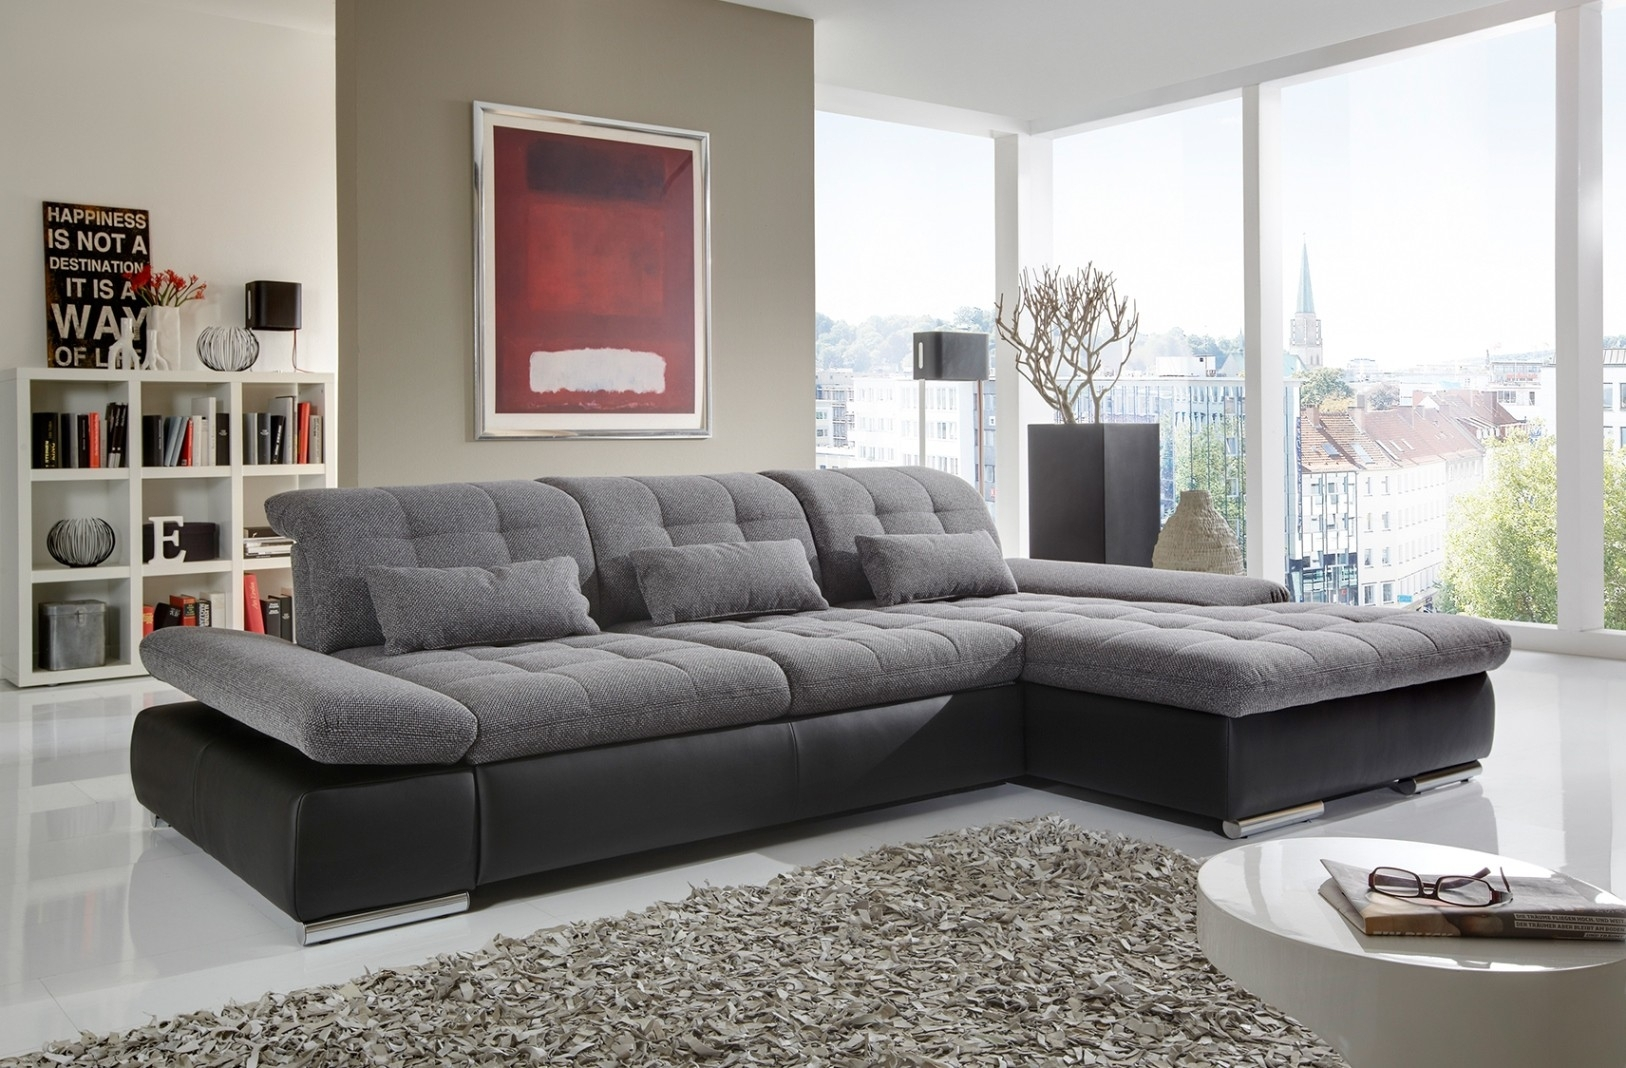 Alpine Sectional Sofa Buy Online At Best Price – Sohomod Regarding Nh Sectional Sofas (Image 1 of 10)